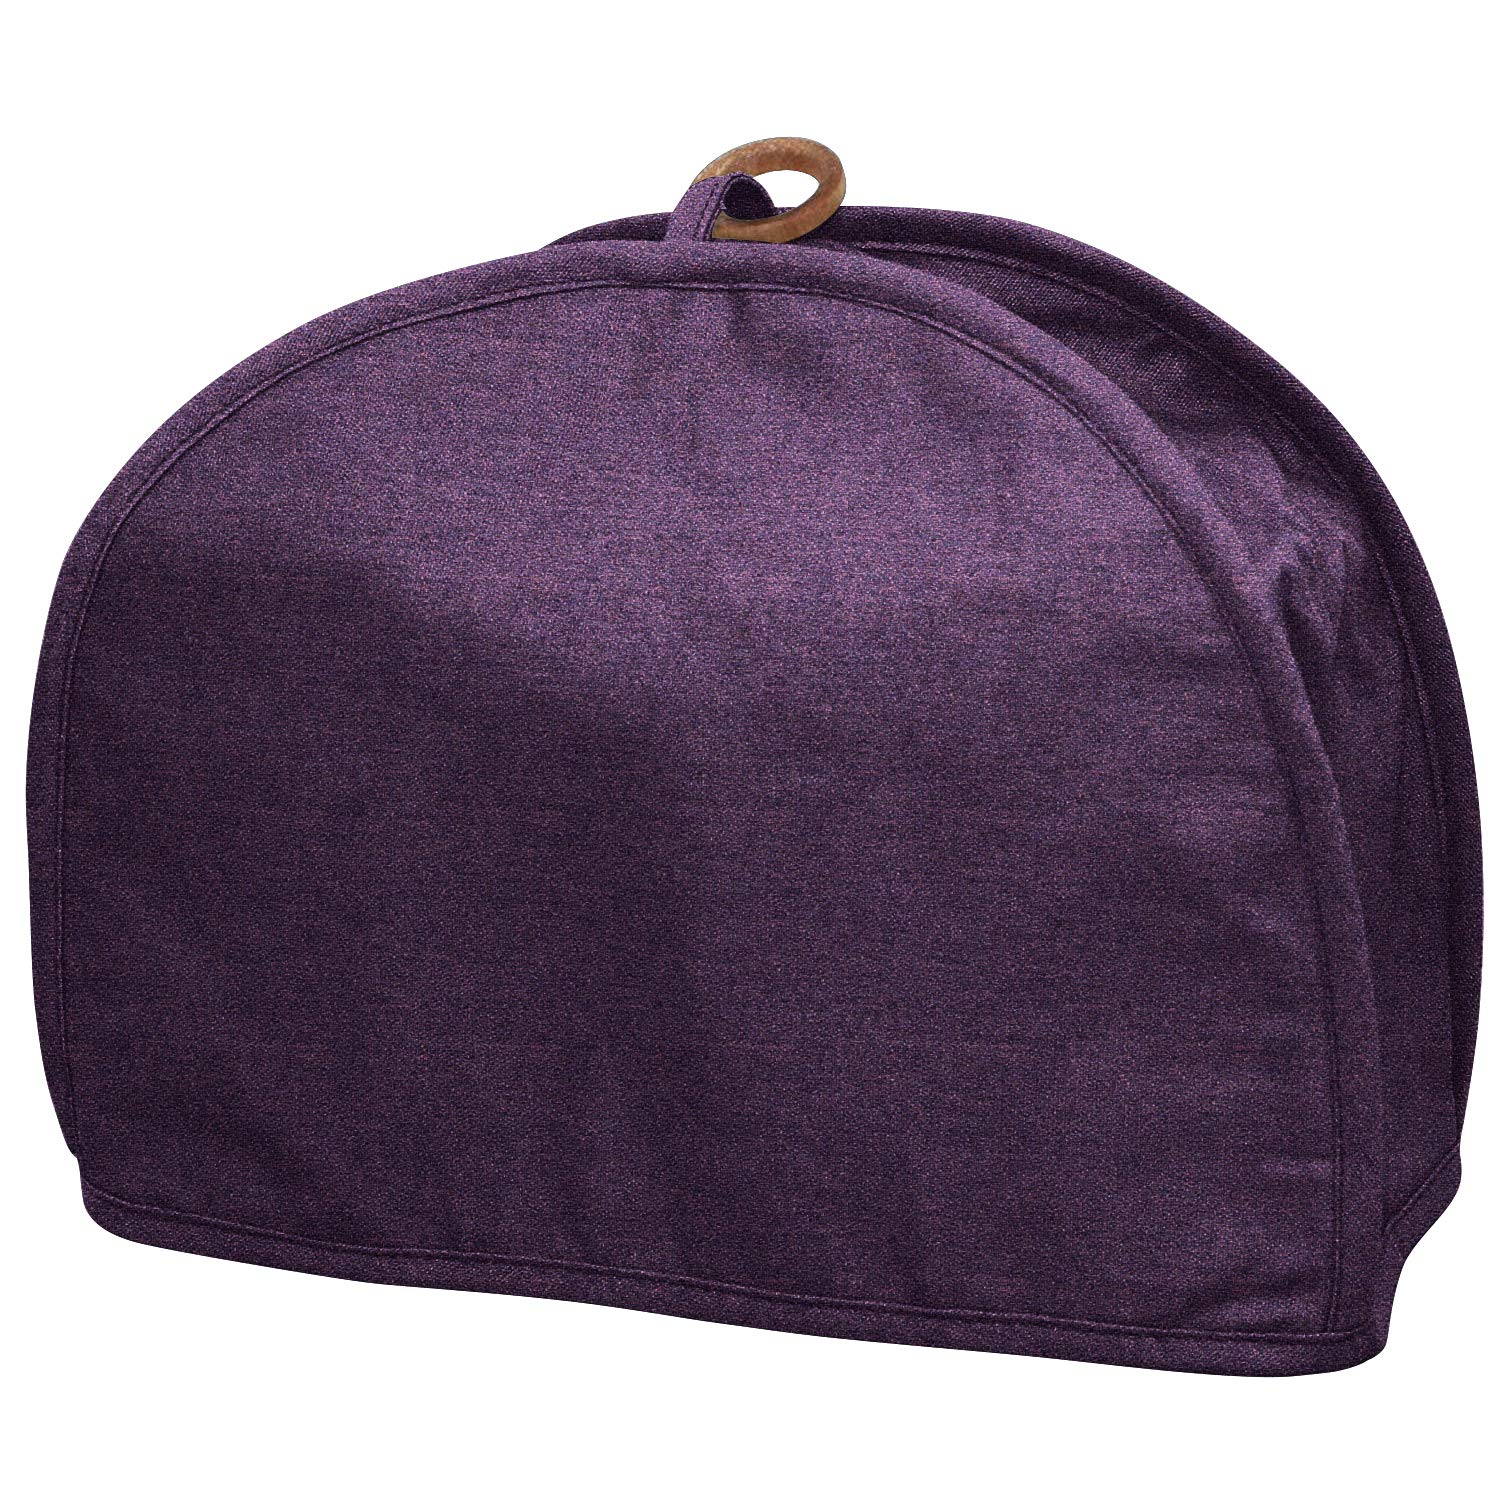 2 Slice Toaster Cover Tan,2 Slice Bread Toaster Oven Dustproof Cover,Cotton Quilted Kitchen Broiler Appliance Organizer Bag,Home Kitchen Toaster Oven Wallets Hold Toaster Broiler Appliances (Purple)